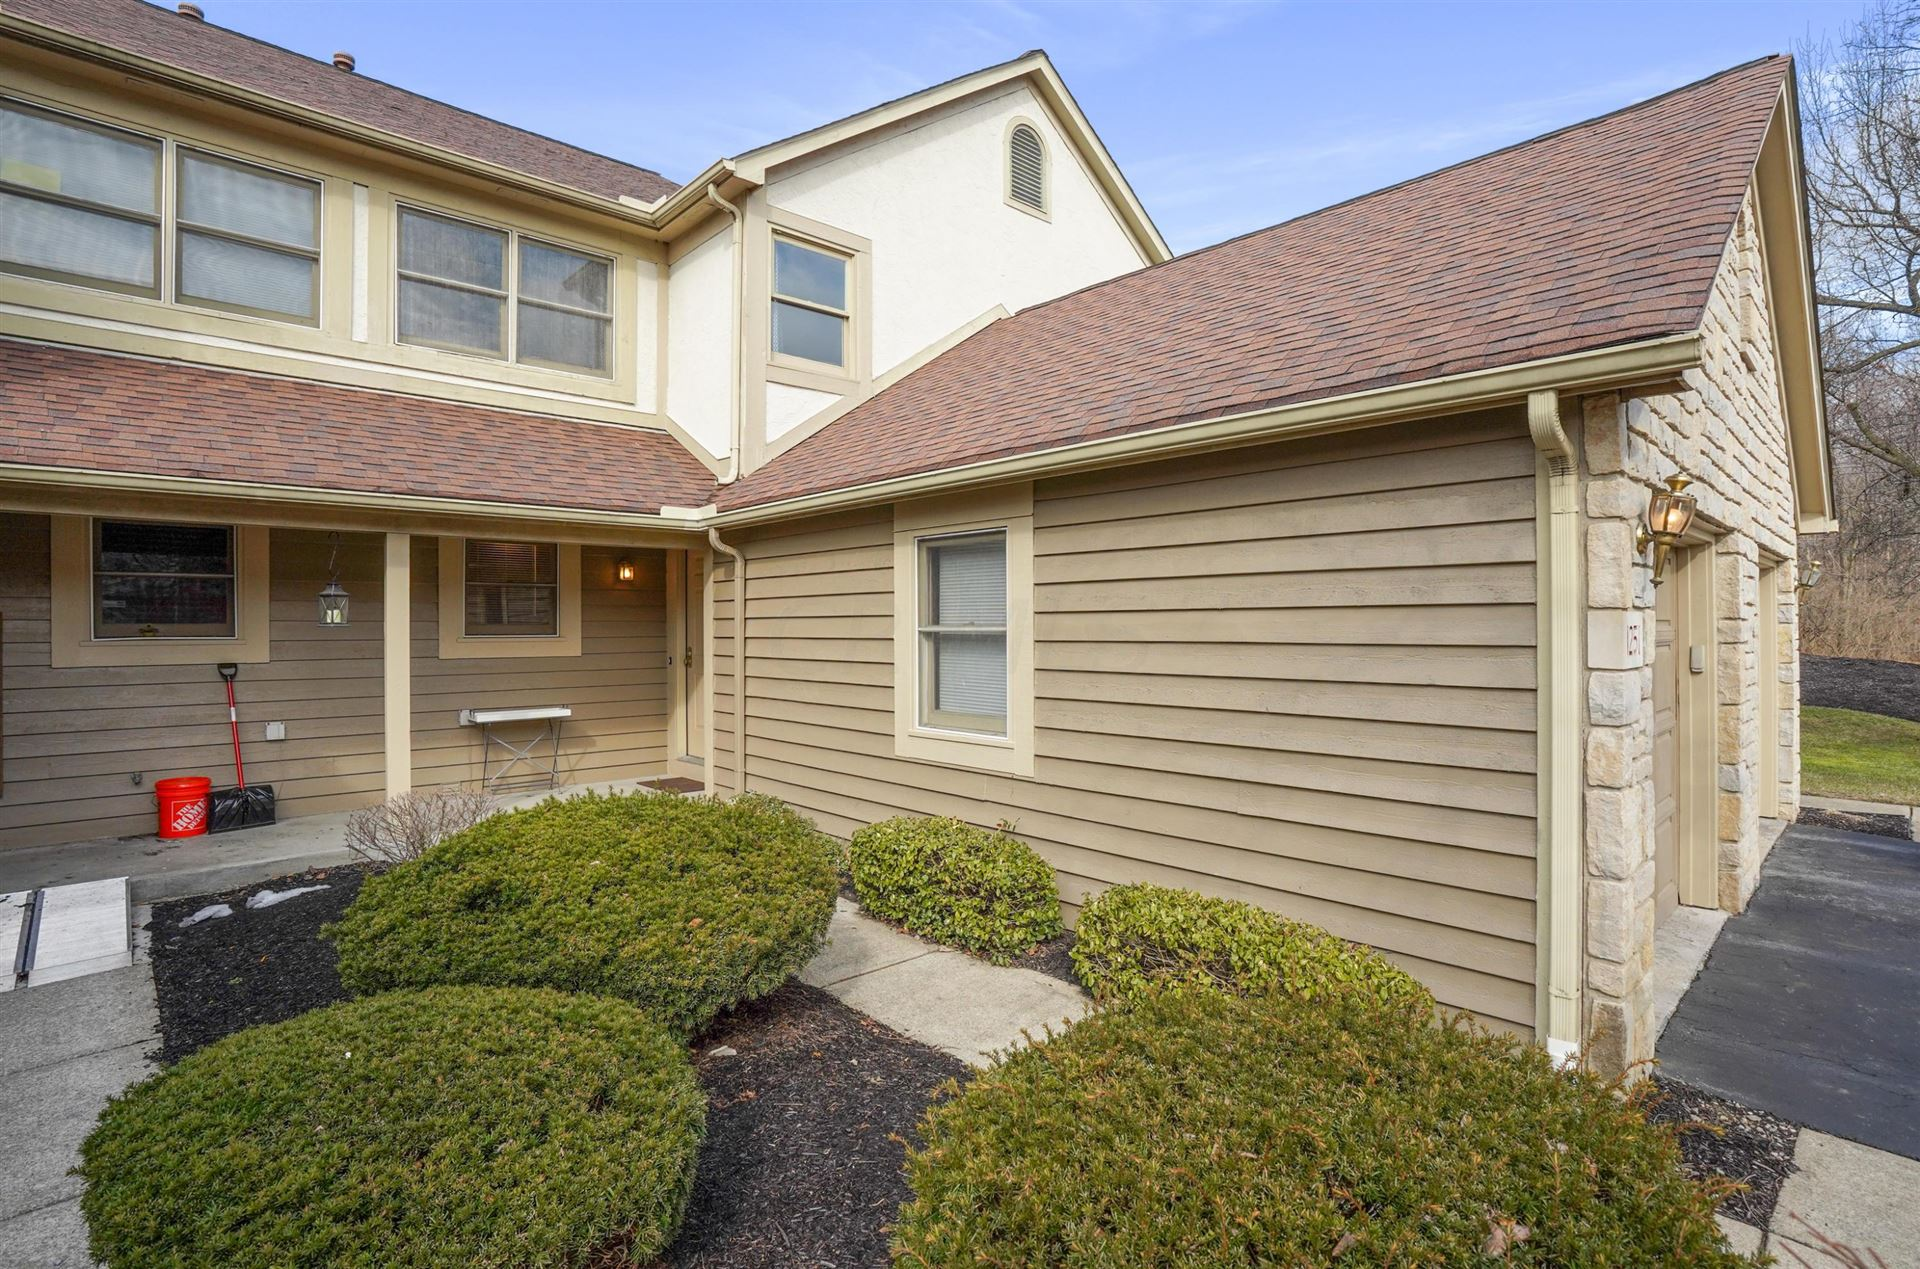 Photo of 1251 Spring Brook Court #1-1251, Westerville, OH 43081 (MLS # 221006066)